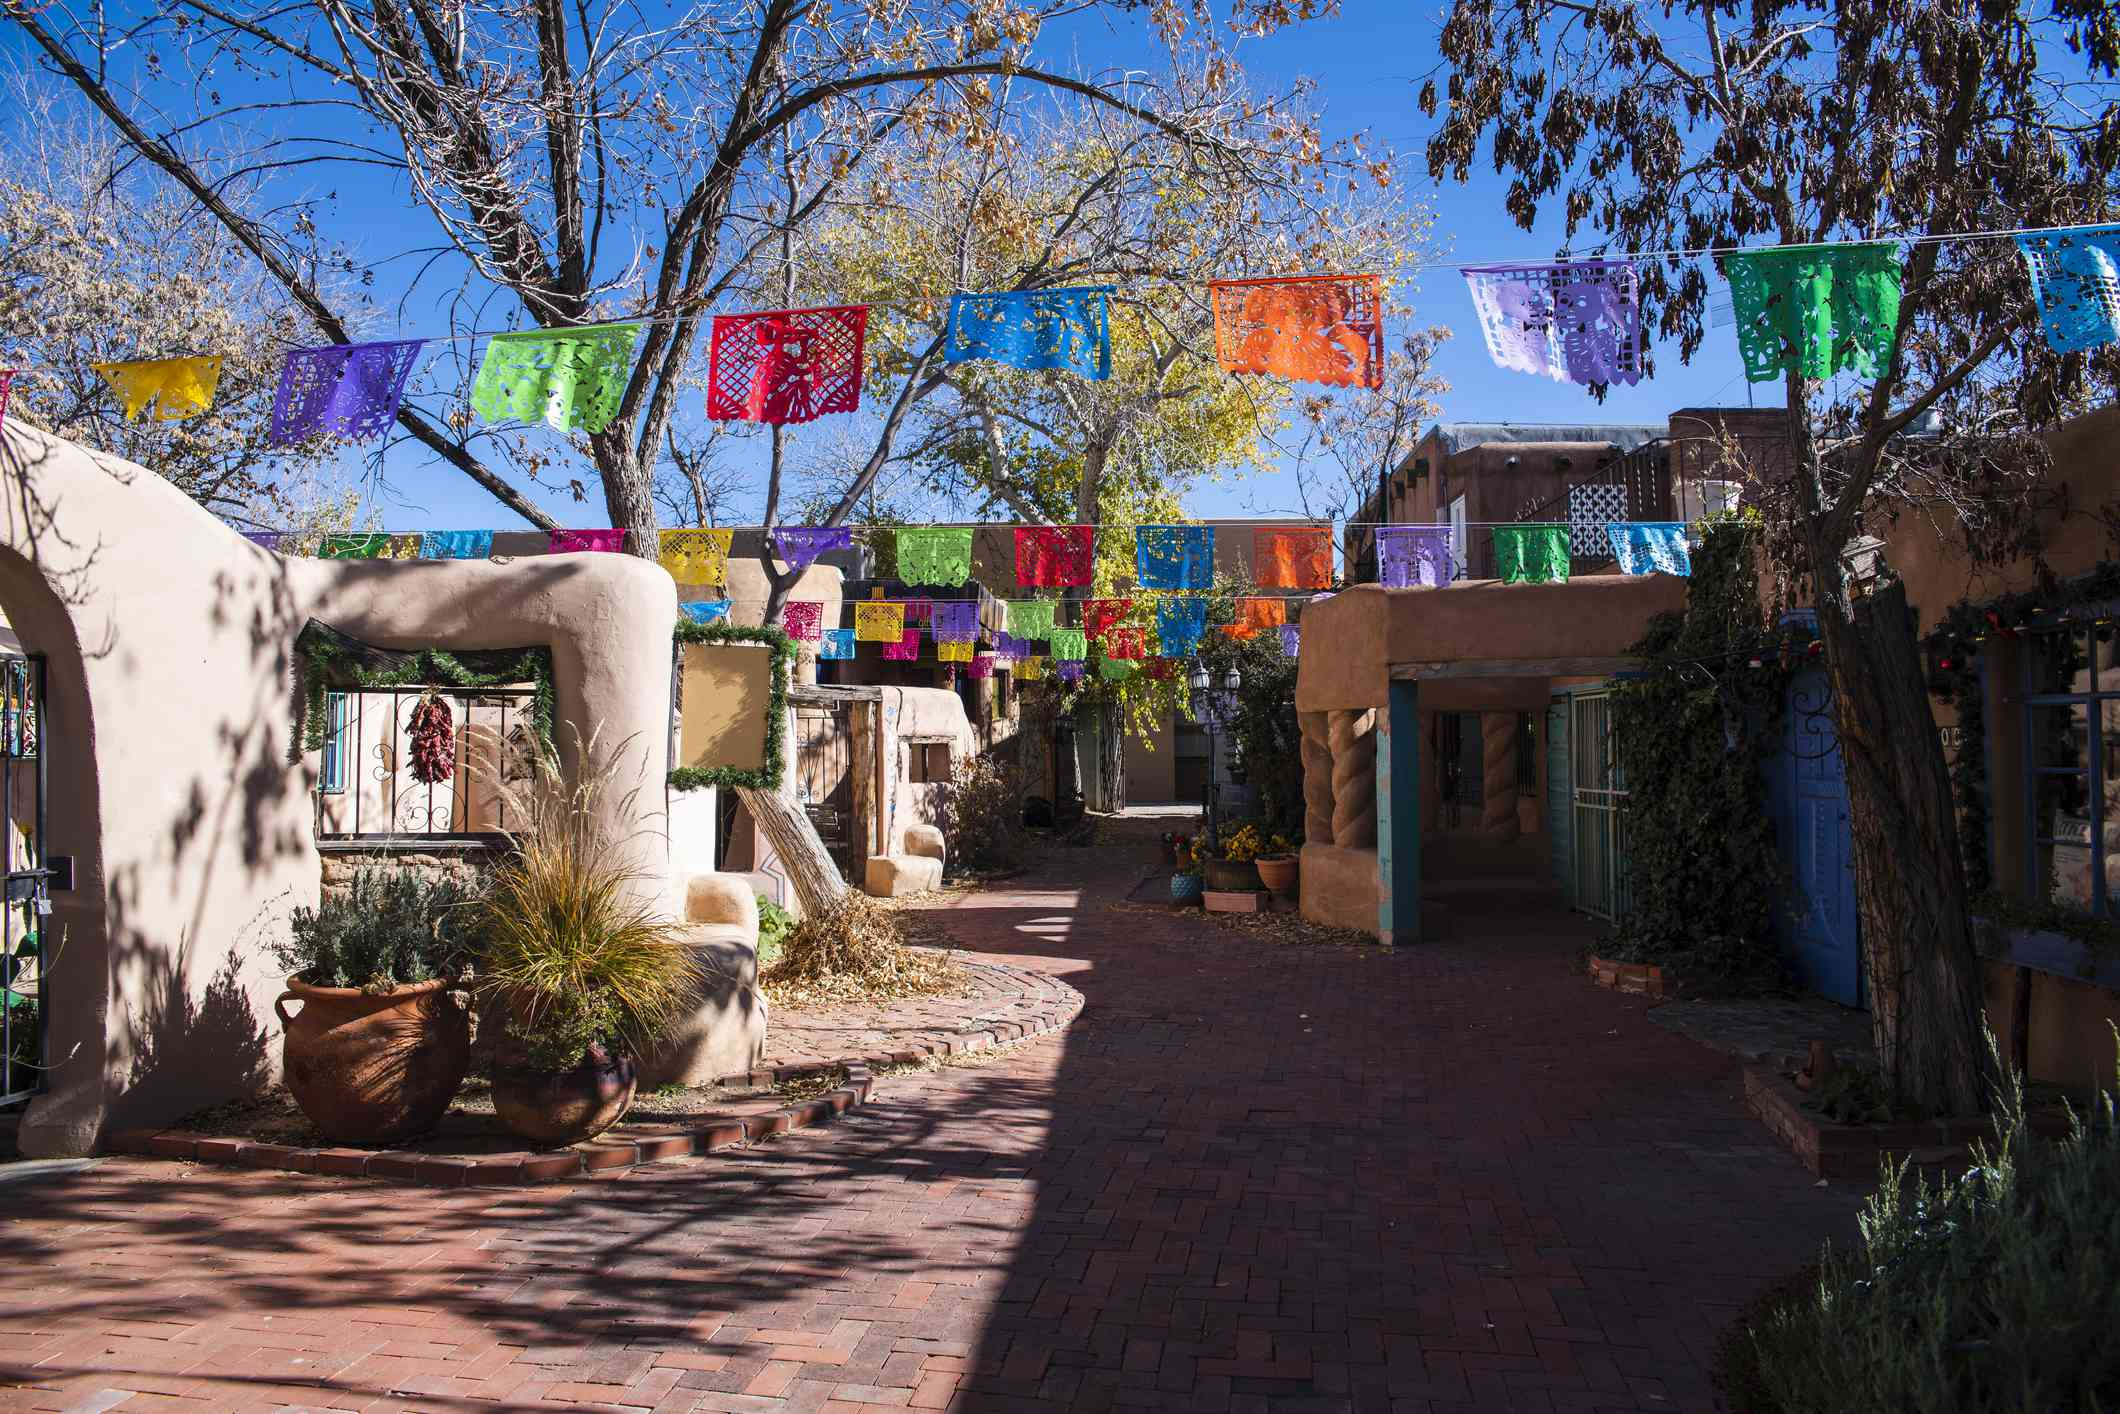 The touristic district in the historic center of Old Town Albuquerque, New Mexico